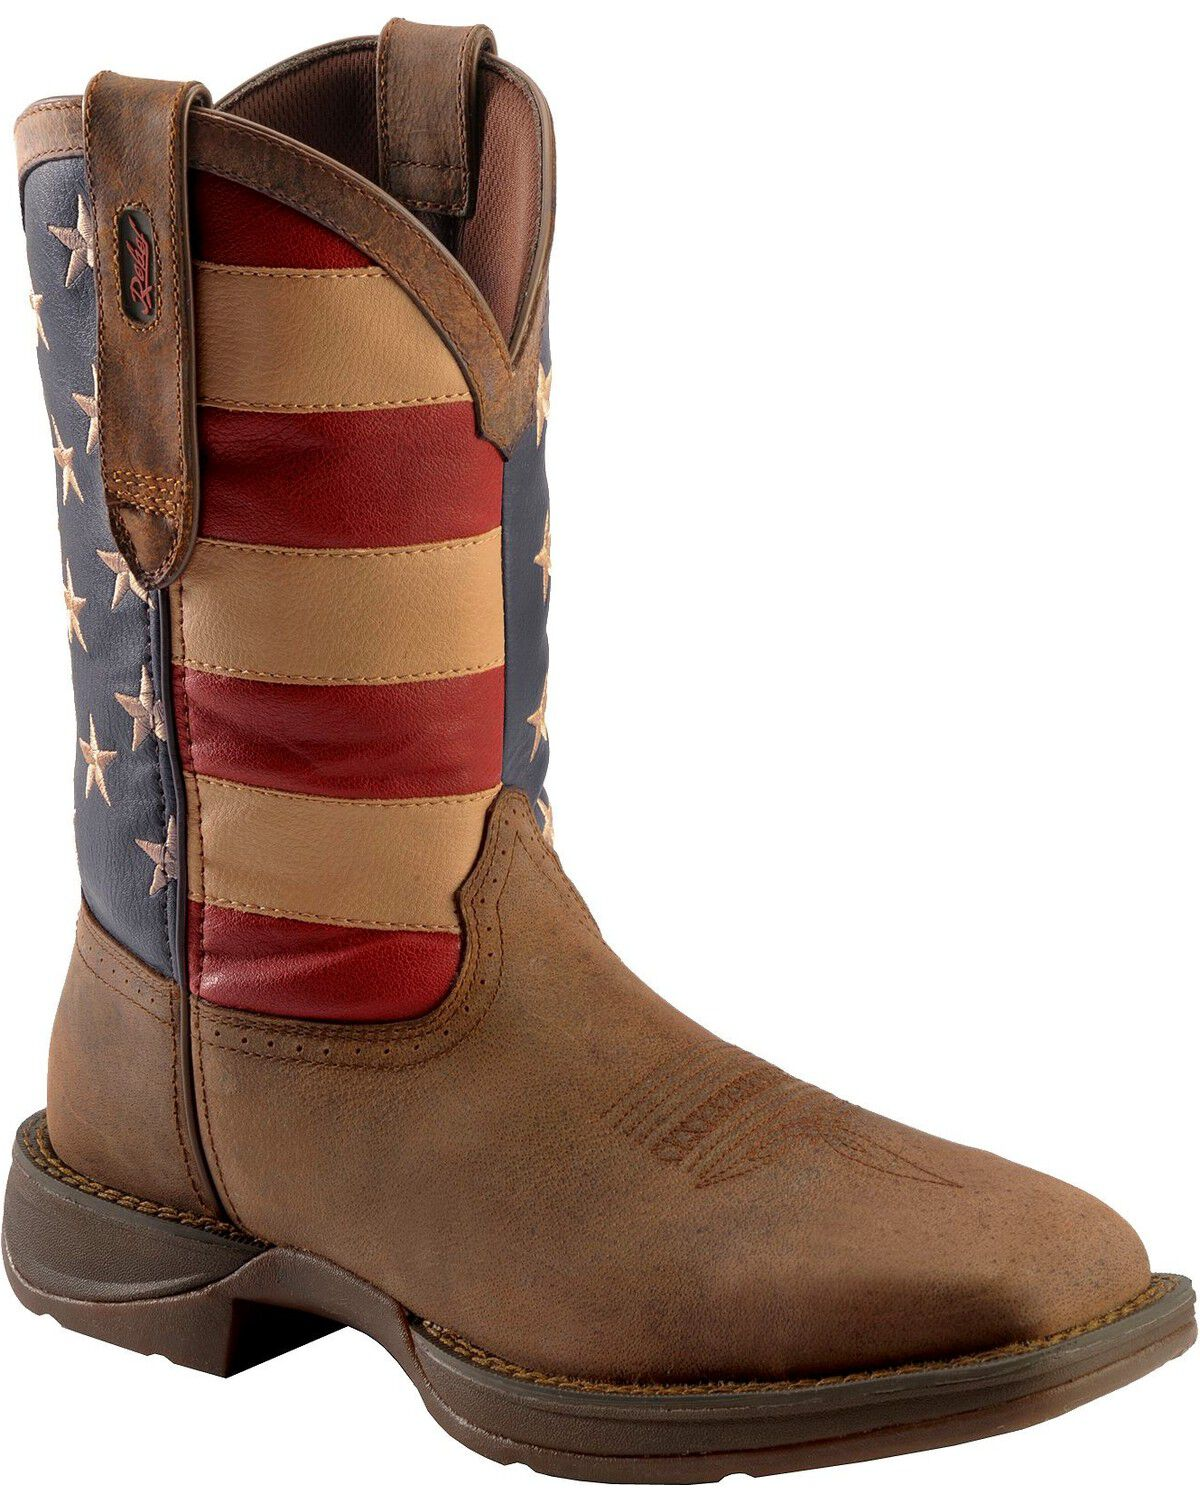 rebel by durango mens steel toe american flag western work boots brown hi